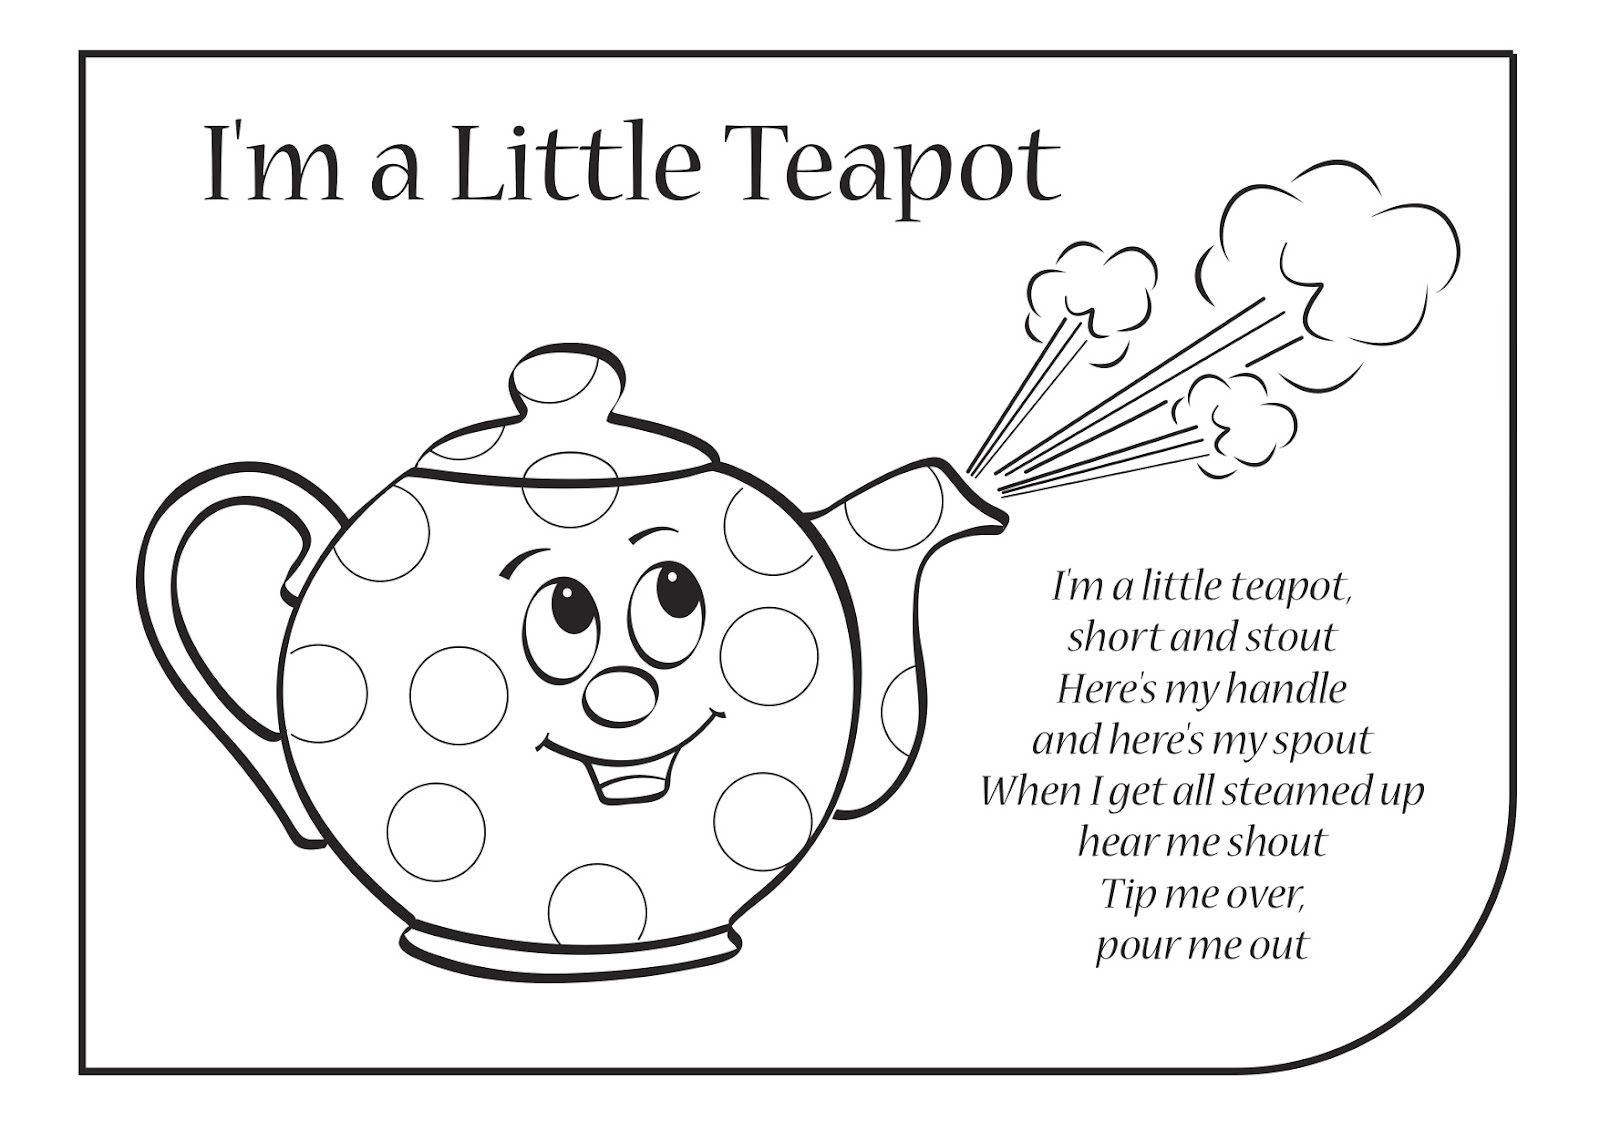 im a little teapot cartoon - photo #32